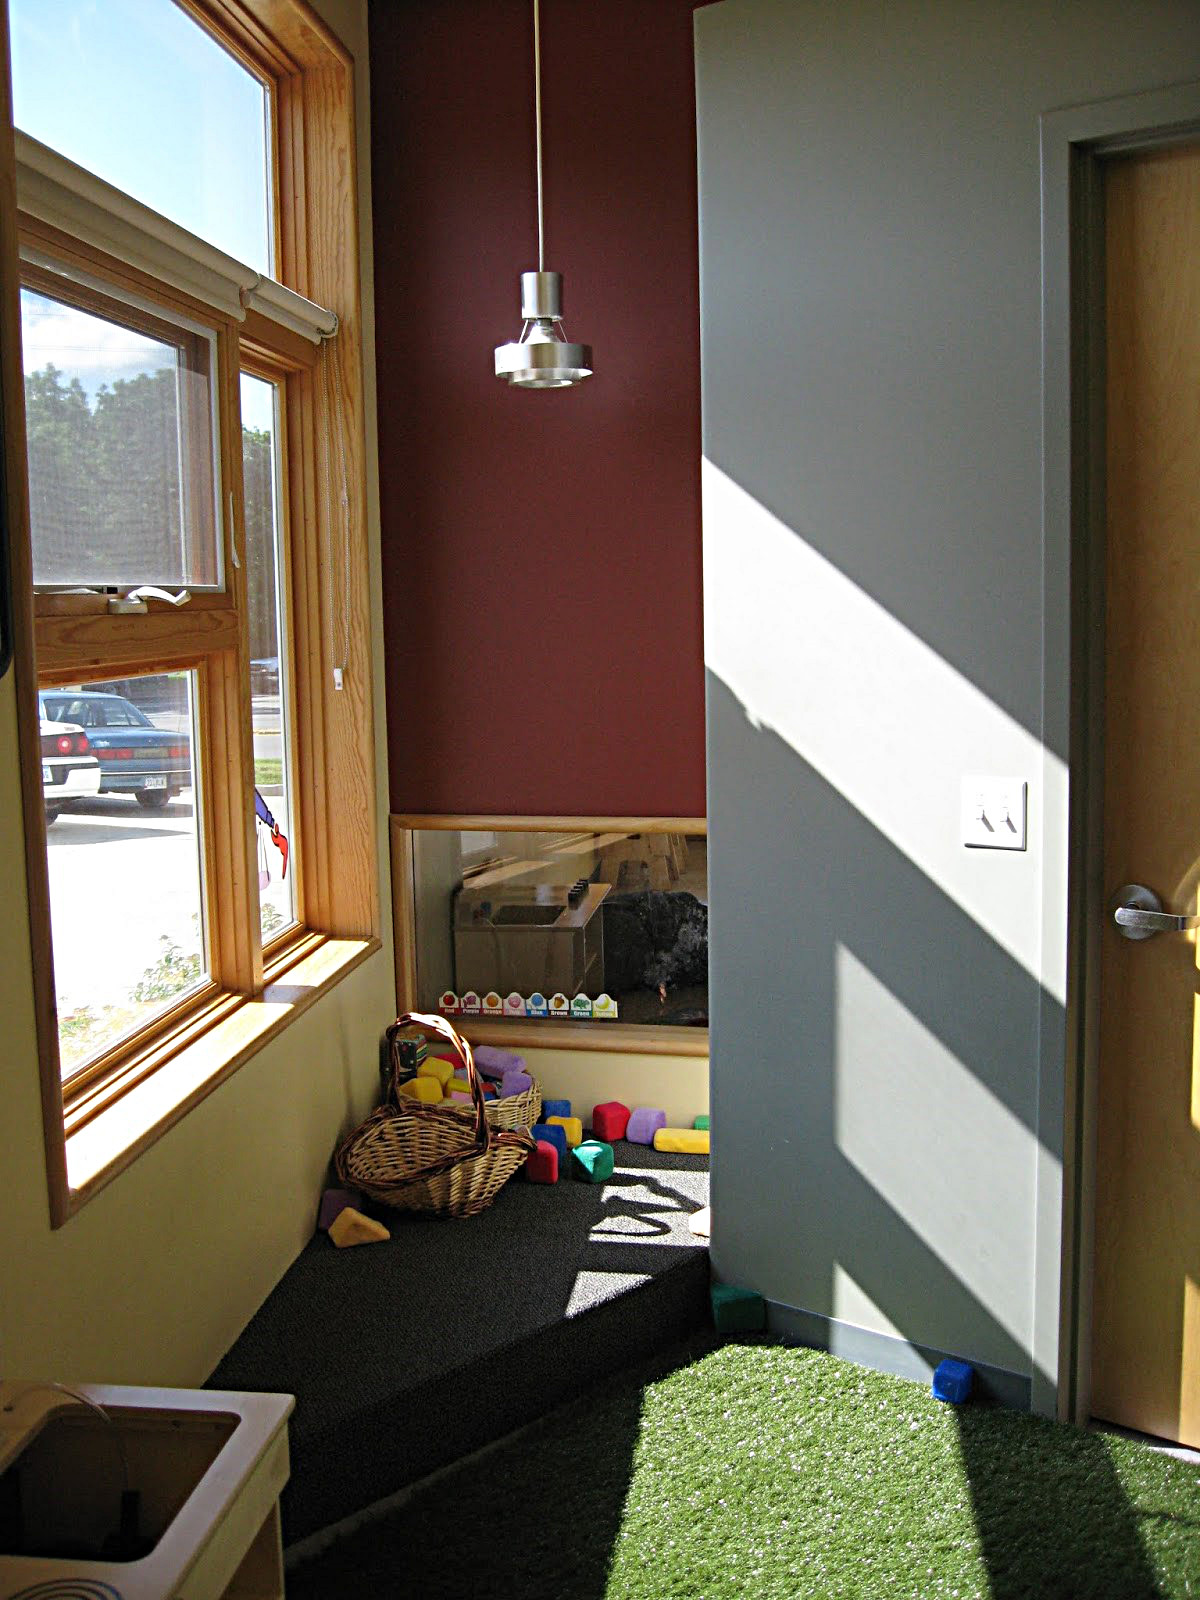 Windows in Child Care Center